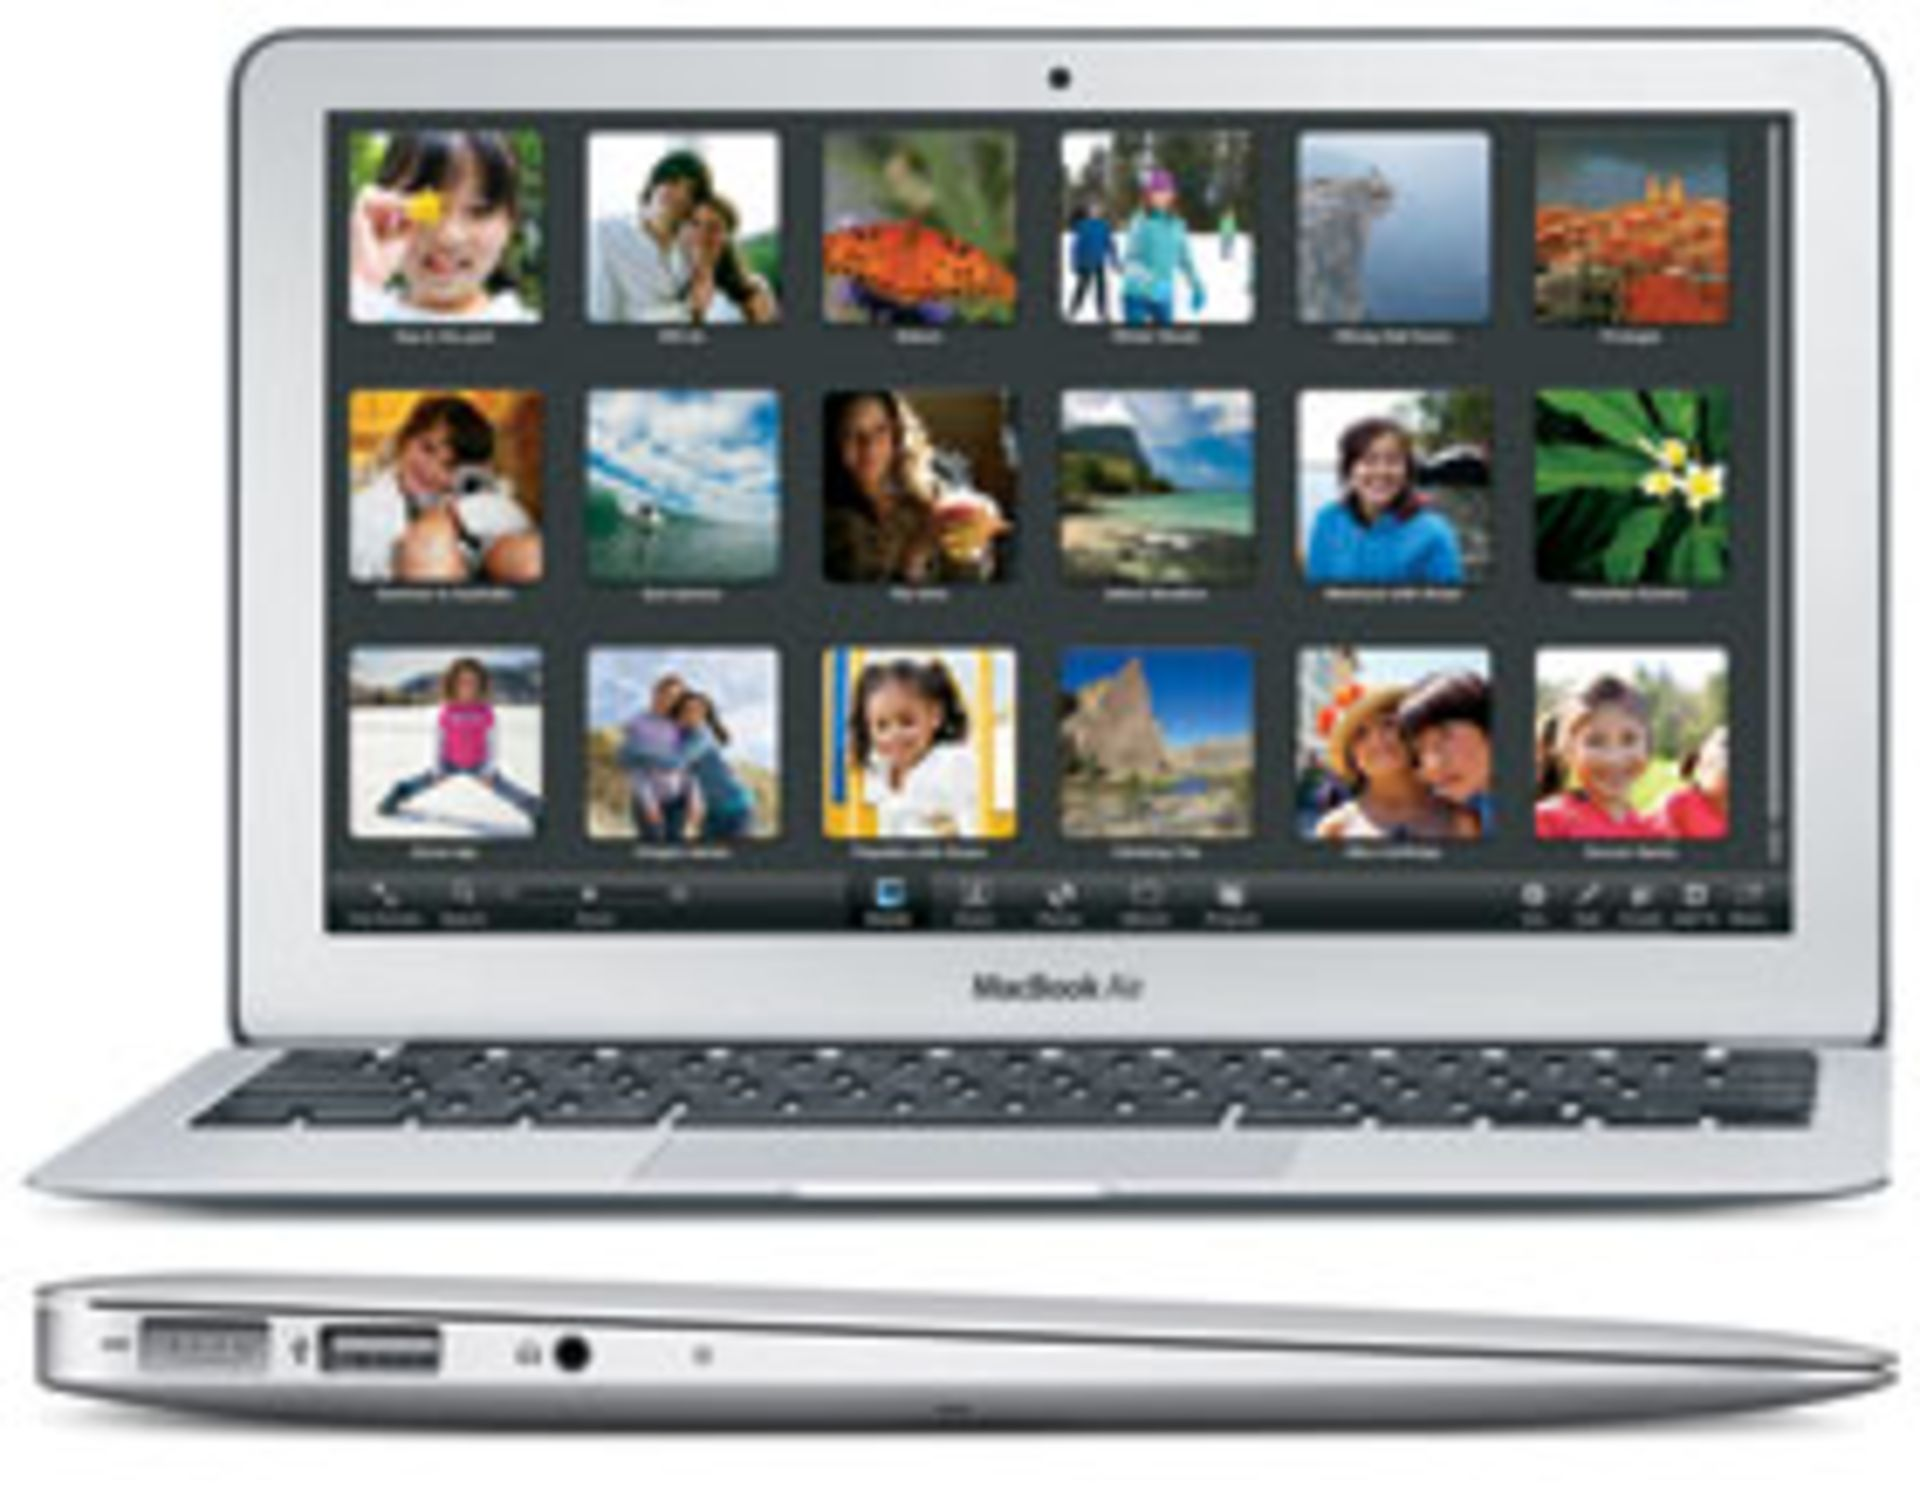 Lot 60034 - V Grade B Macbook Air 11.6 Inch Core 2 Duo - 64GB SSD - A1370 - Available Approx 7 Working Days